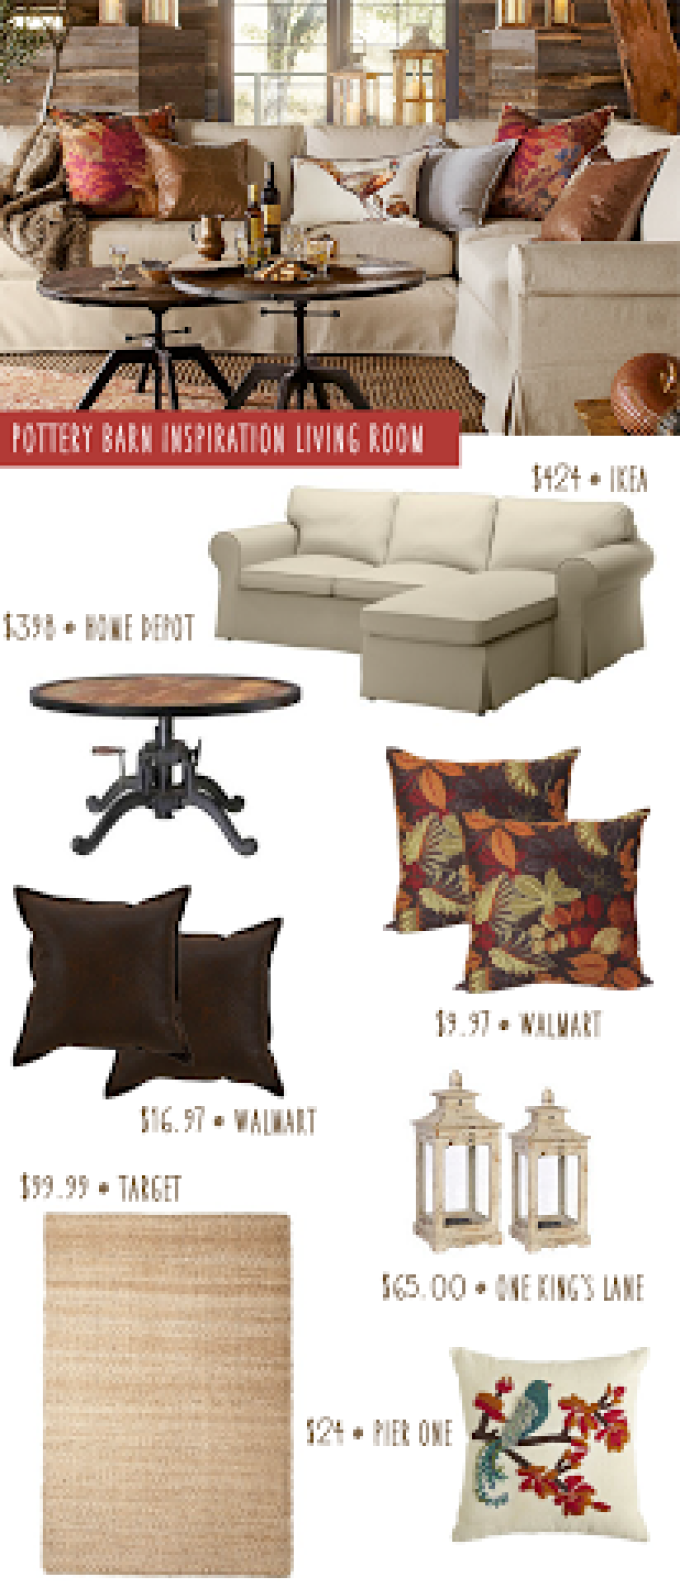 Pottery Barn Inspired Living Room: Get the Look for Less ...